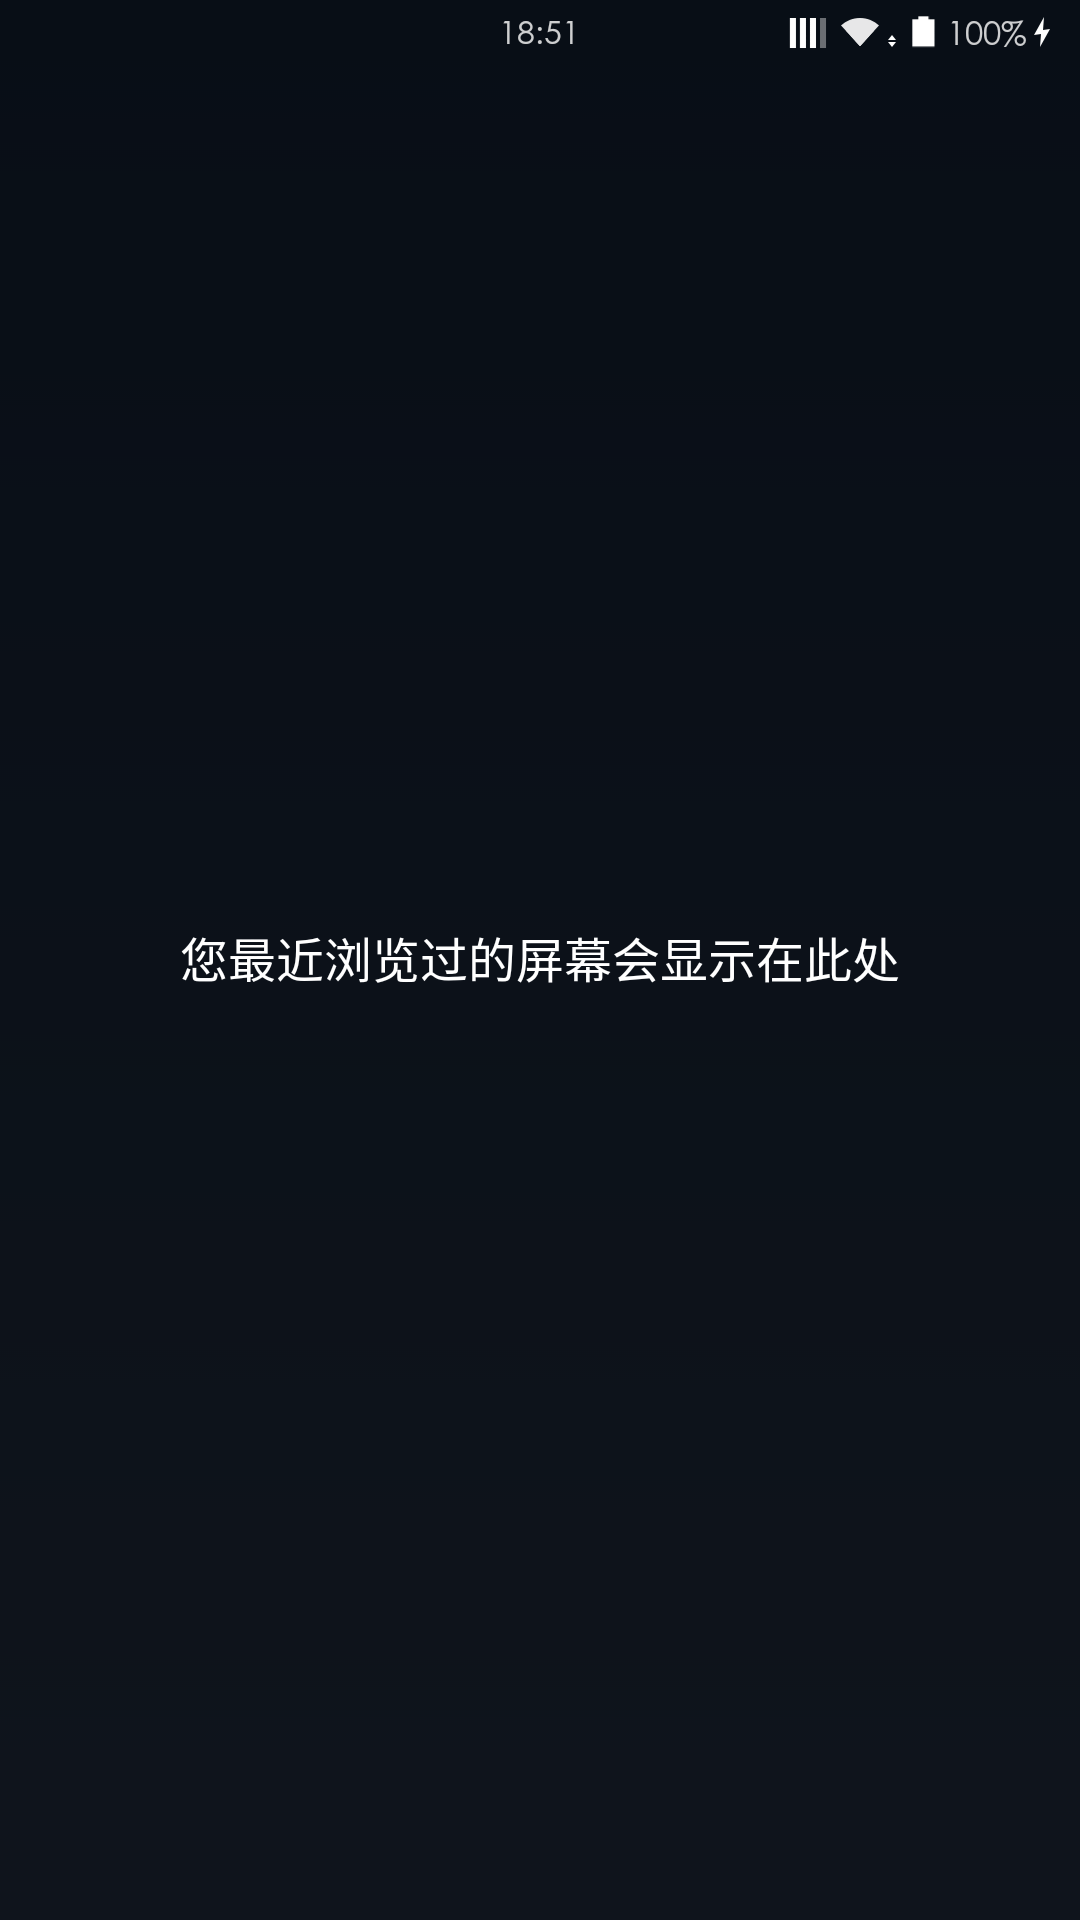 Screenshot_2015-07-31-18-52-00.png